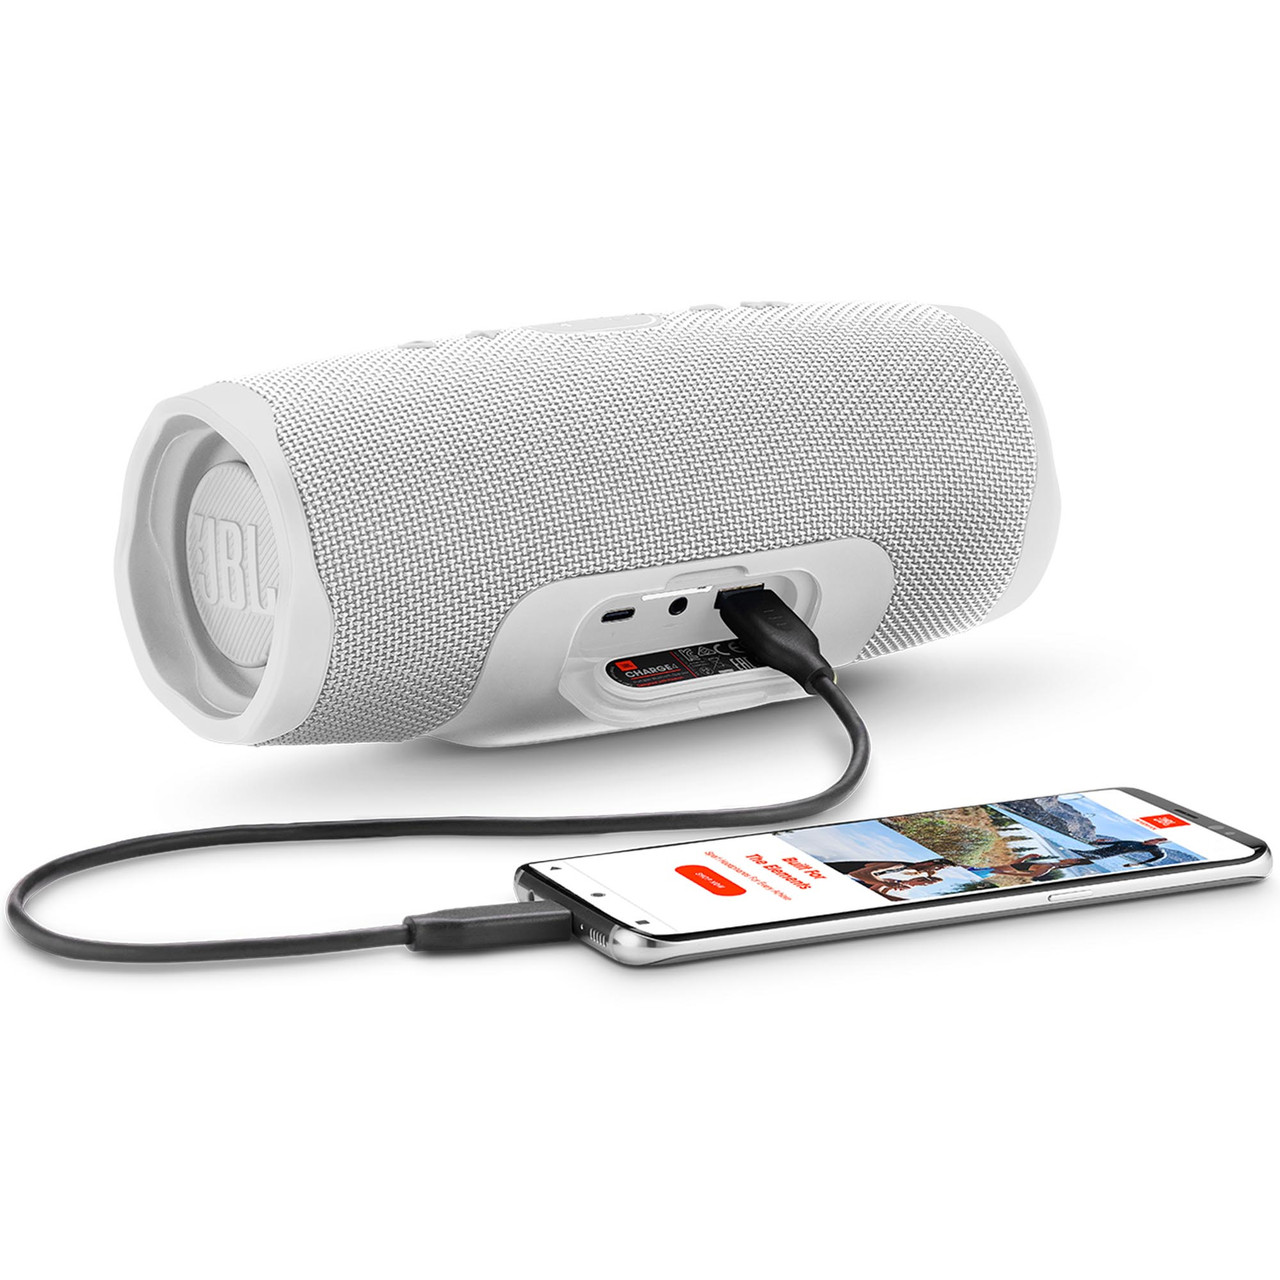 Jbl Charge4 White Waterproof Portable Bluetooth Speaker With 20 Hours Of Playtime Creative Audio